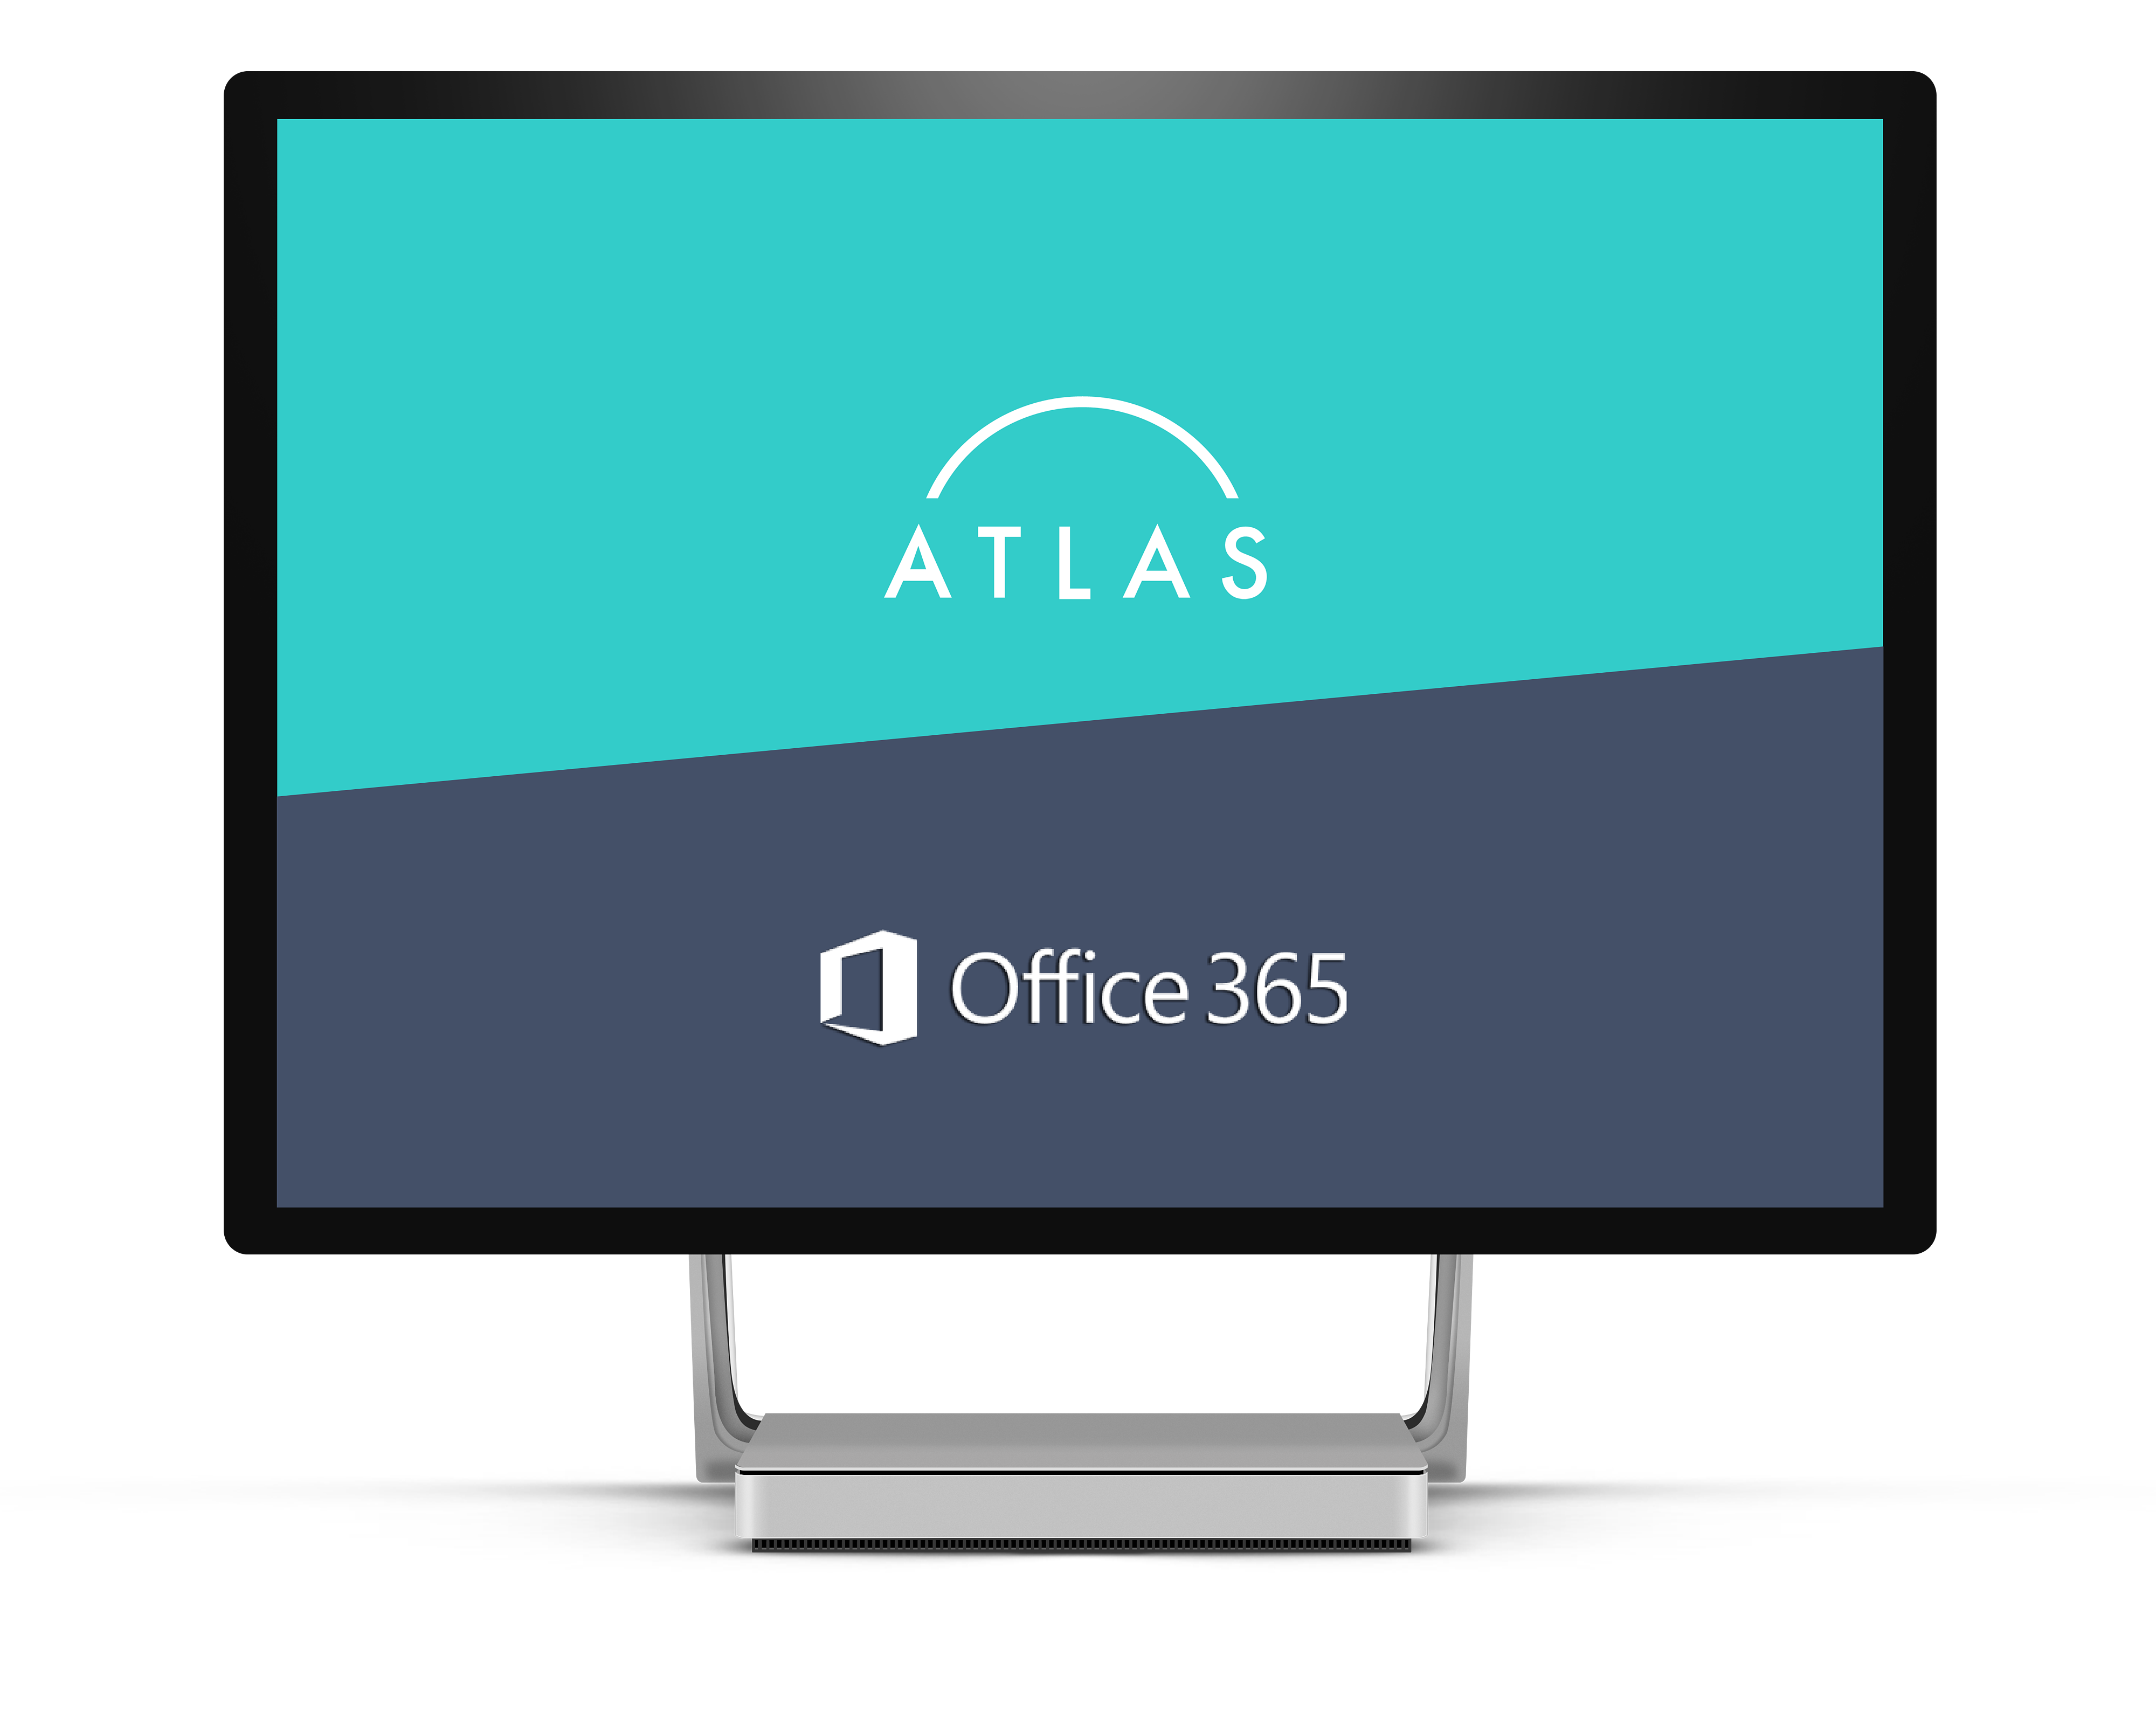 Atlas for remote working on Office 365